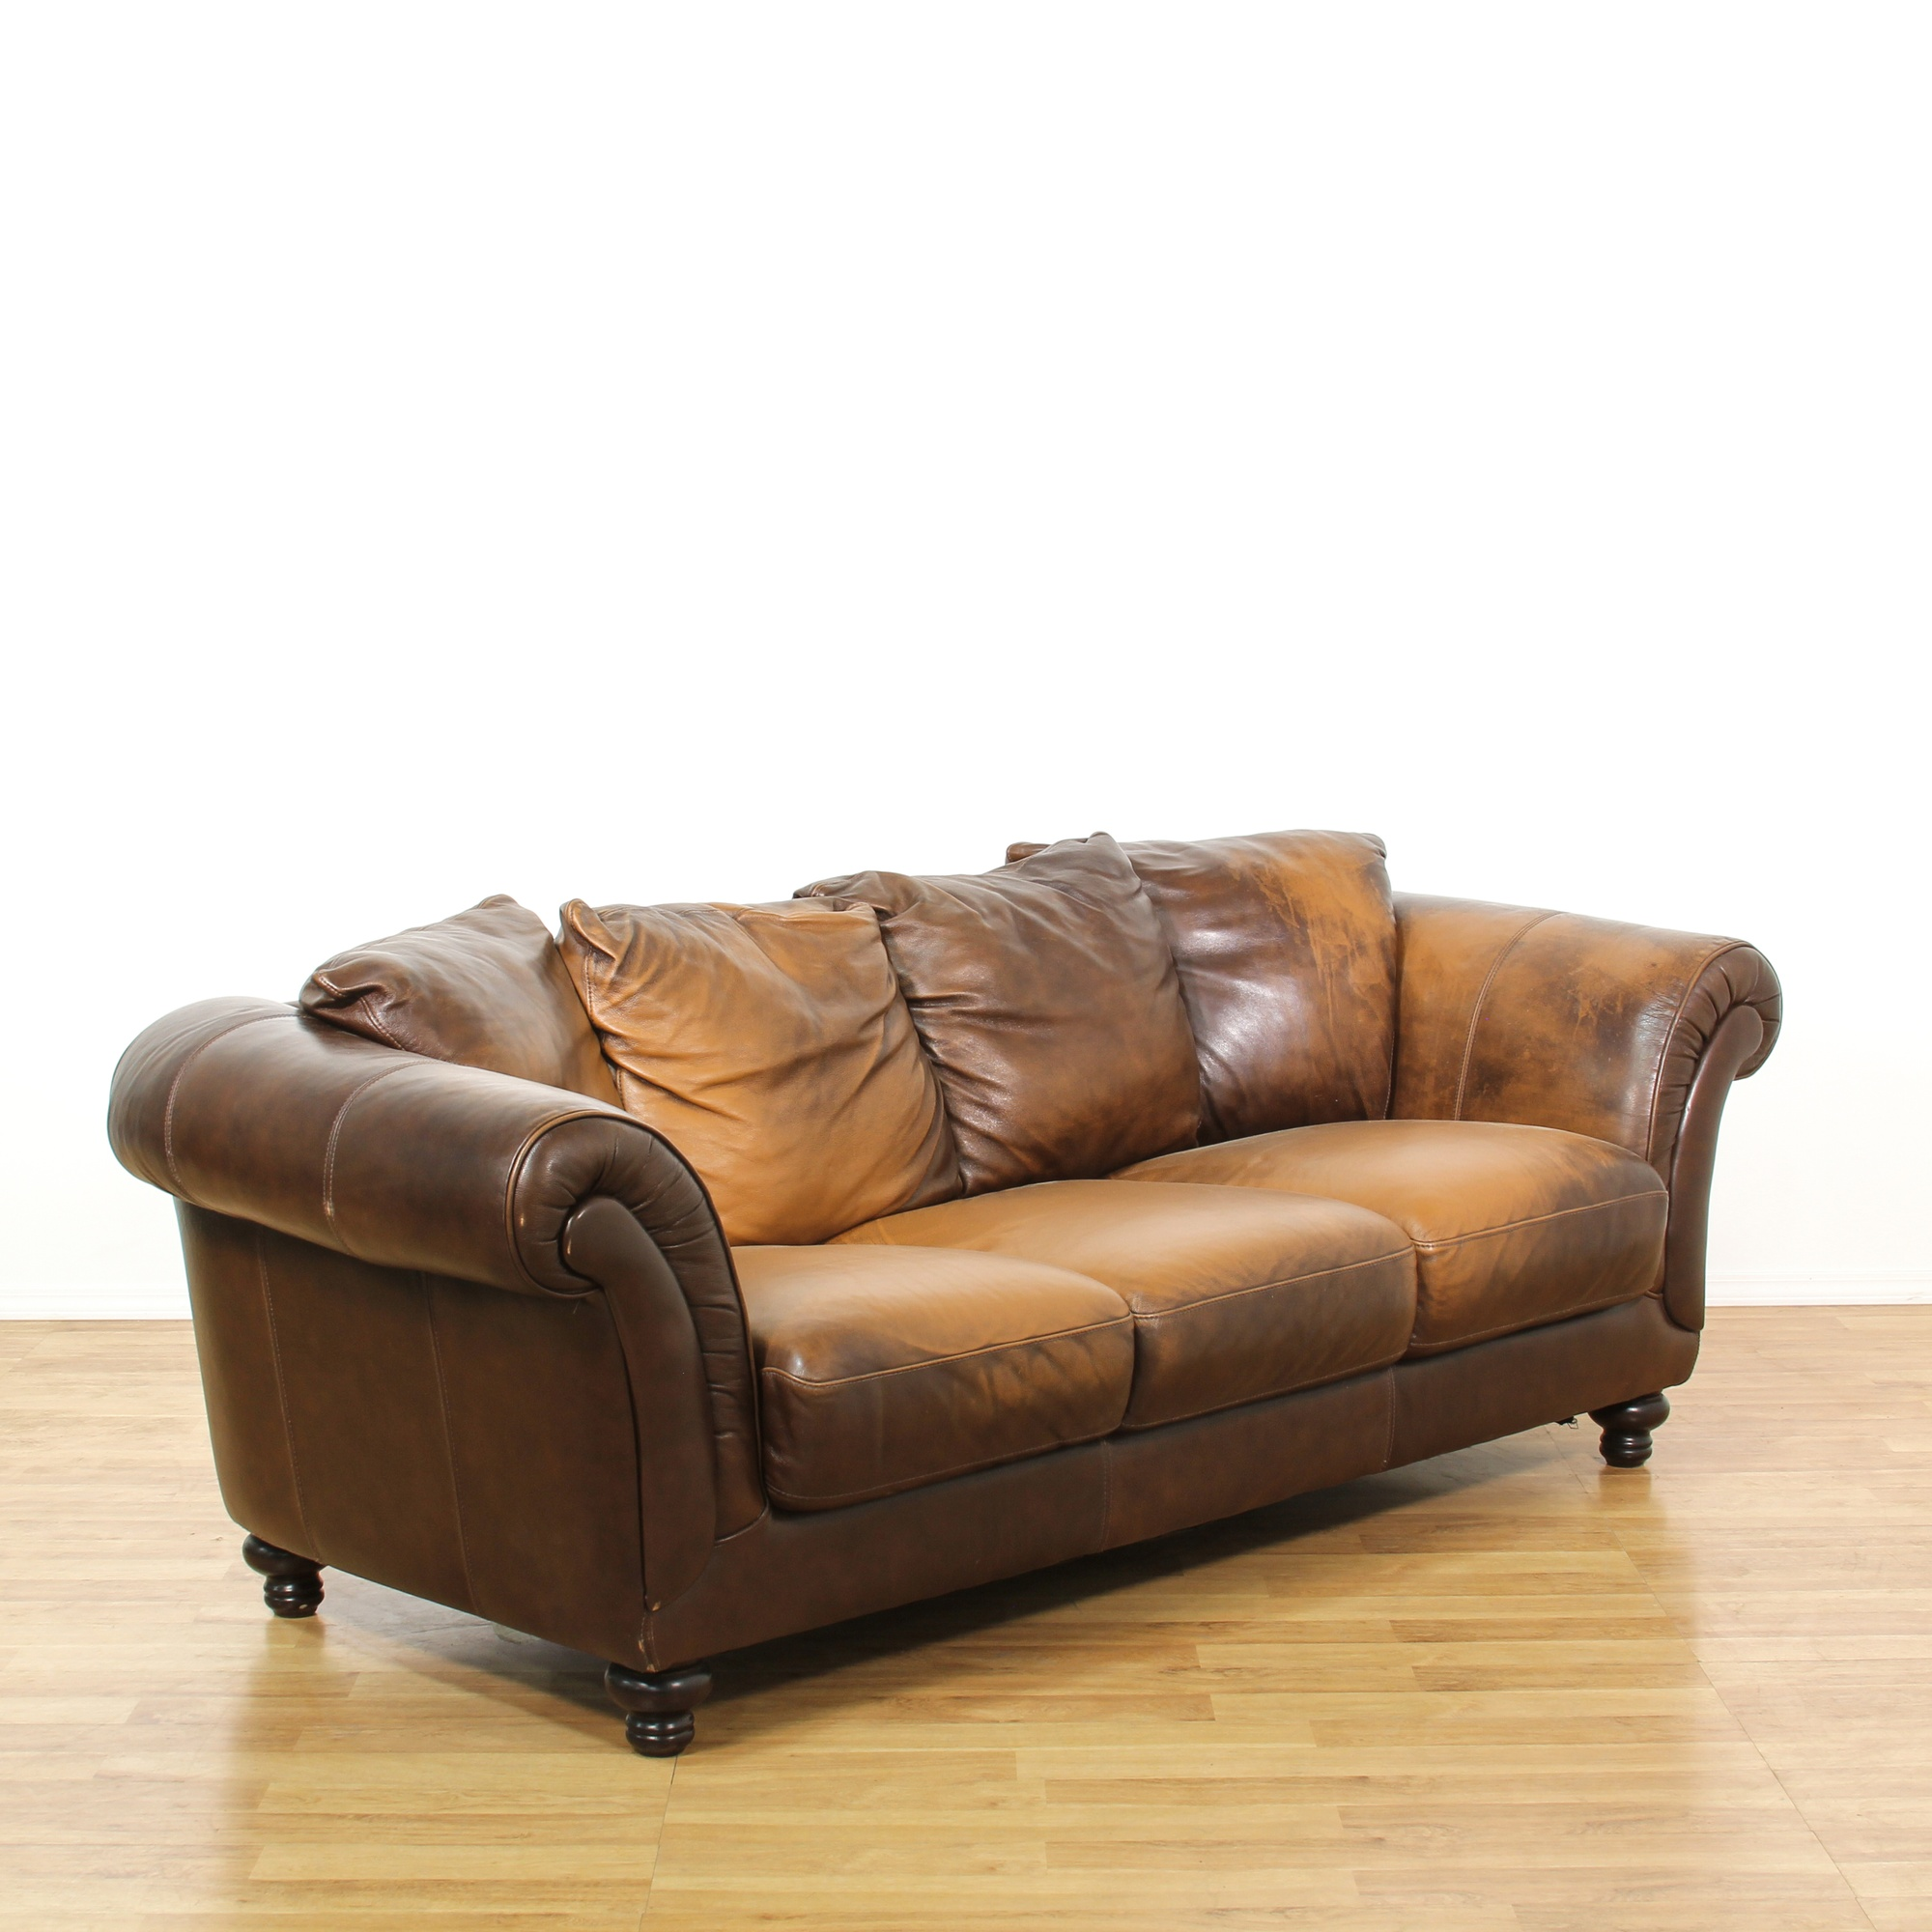 Distressed Brown Leather Upholstered Sofa